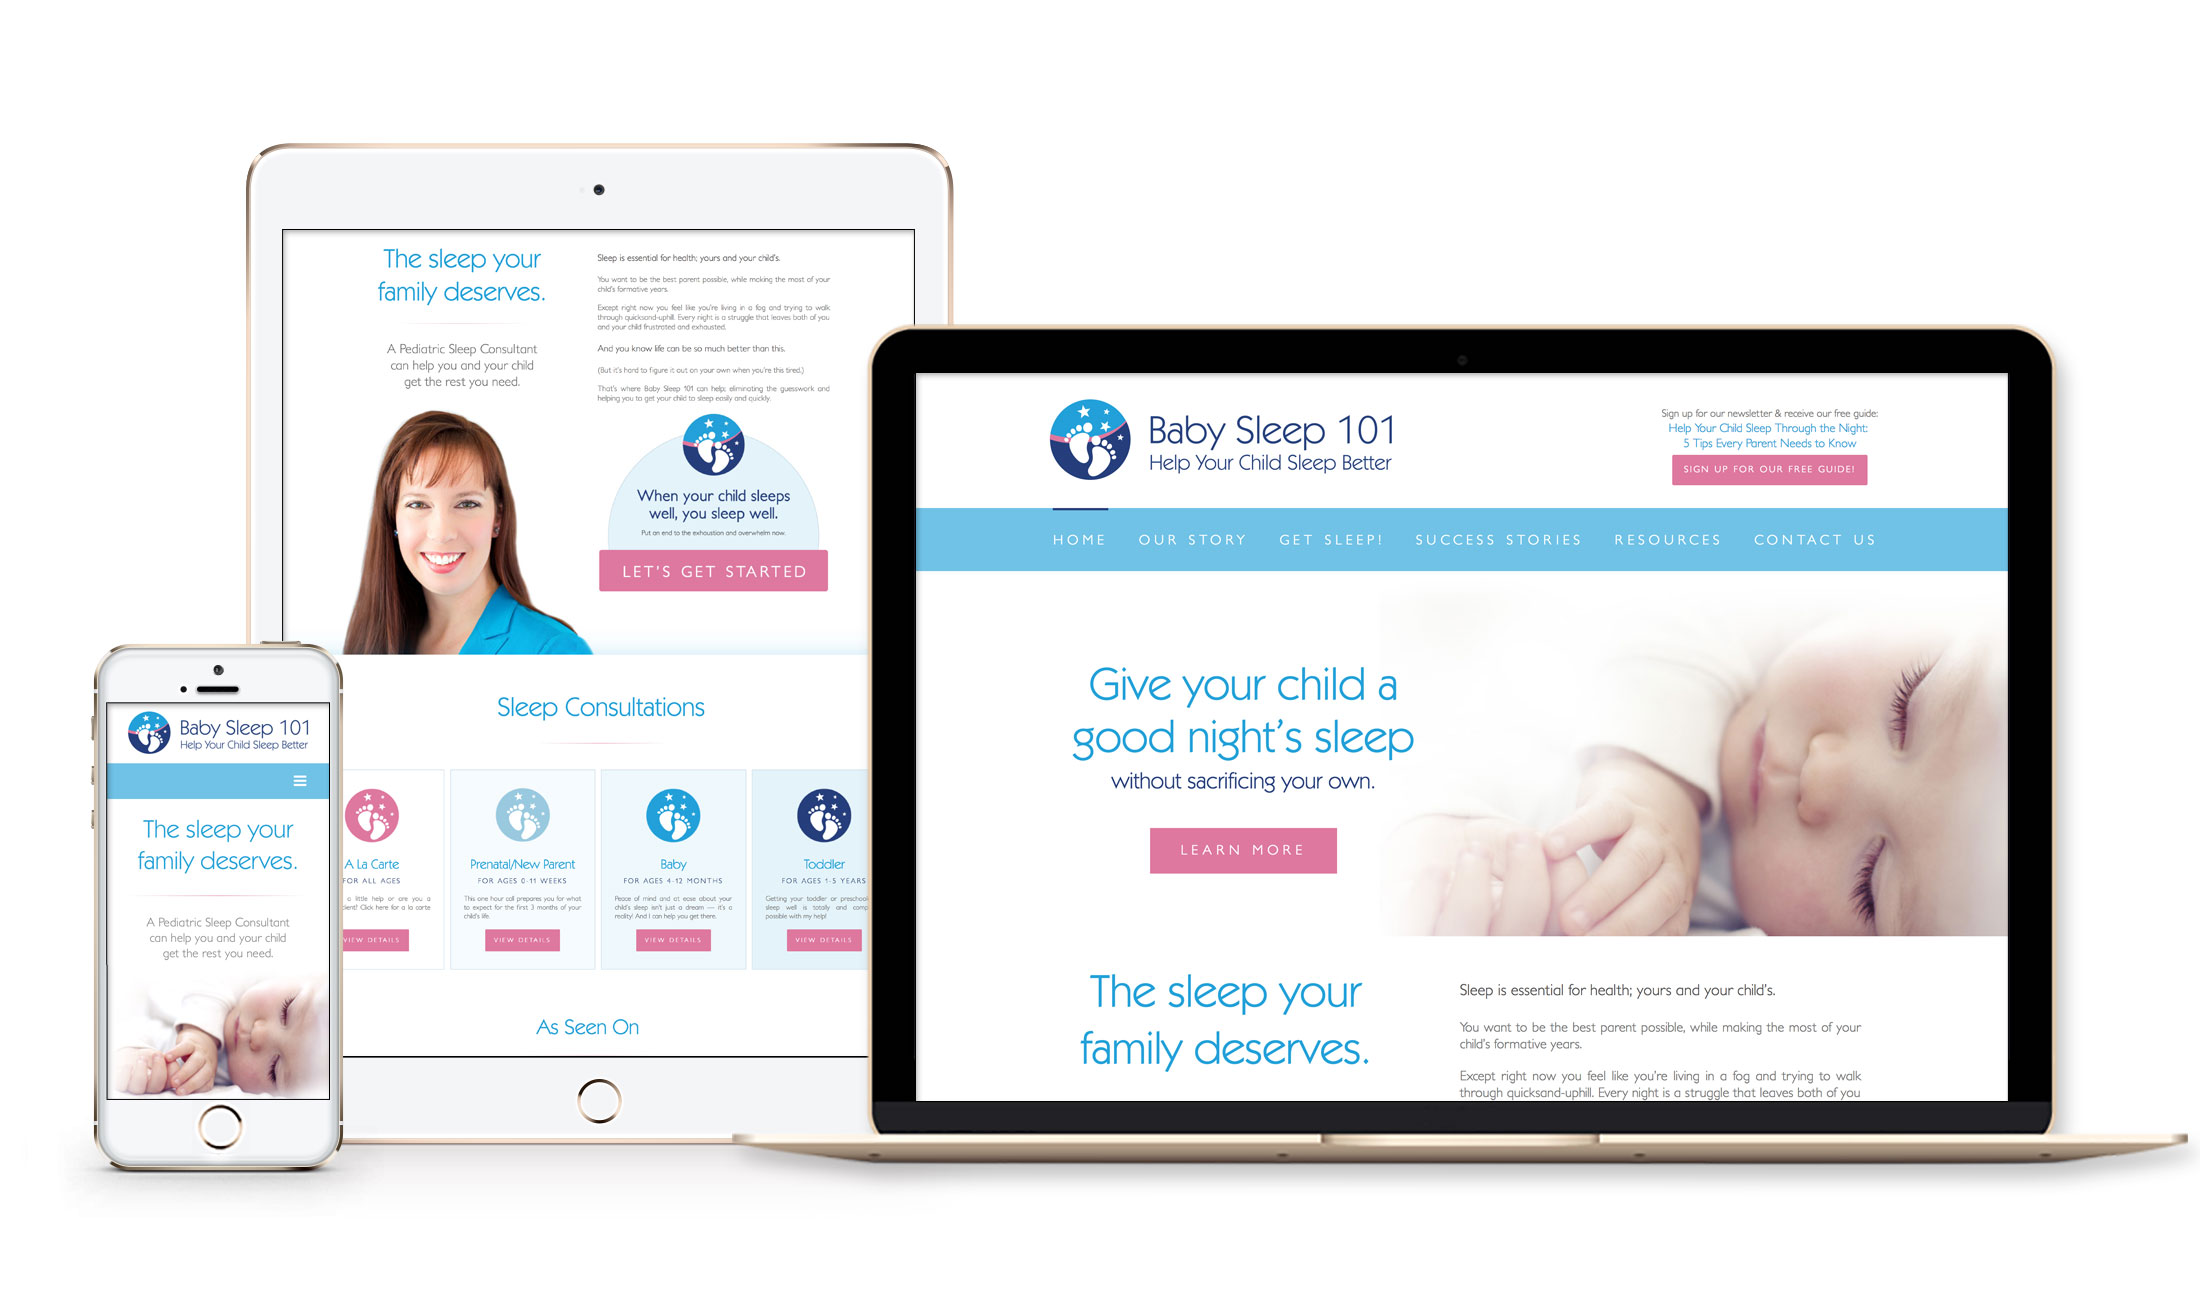 adb176e68 Baby Sleep 101 was created out of a passion to support parents who are  struggling with their baby or toddler sleep issues. They are Manitoba's  only ...